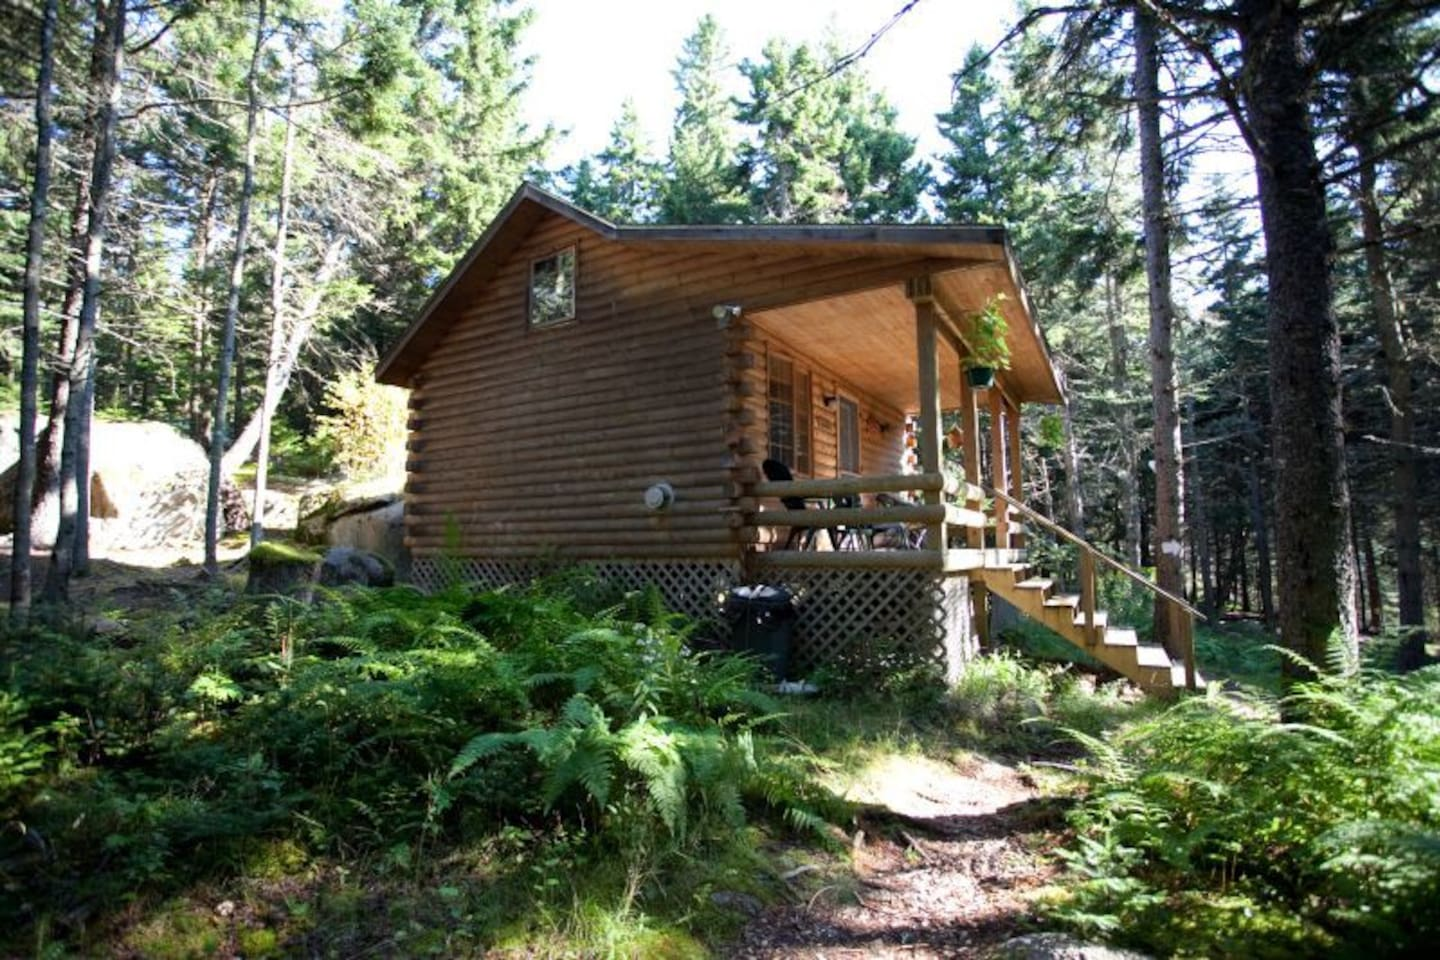 View of Cabin from path entering.